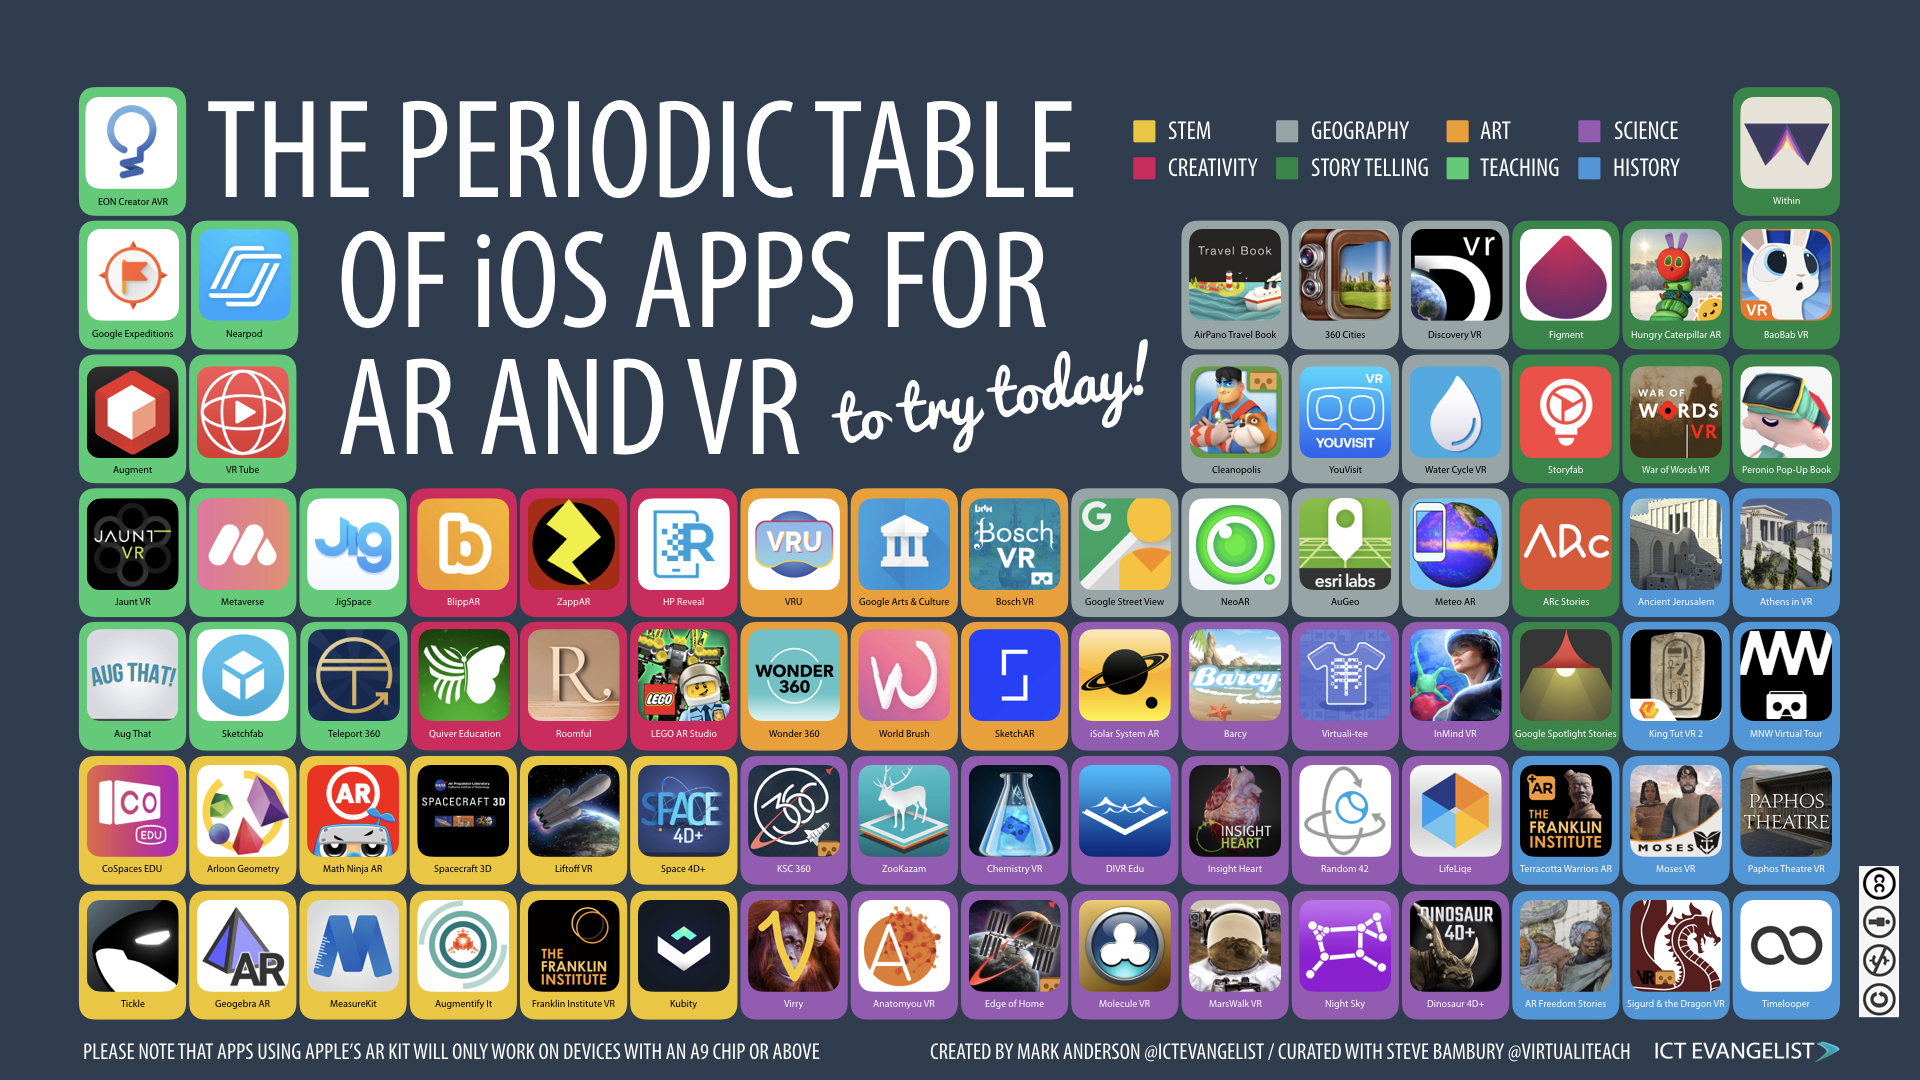 The new periodic table of ios apps for ar and vr ictevangelist for innovation in education with technology is that of augmented reality and virtual reality ive been a fan of exploring how these types of apps can urtaz Gallery